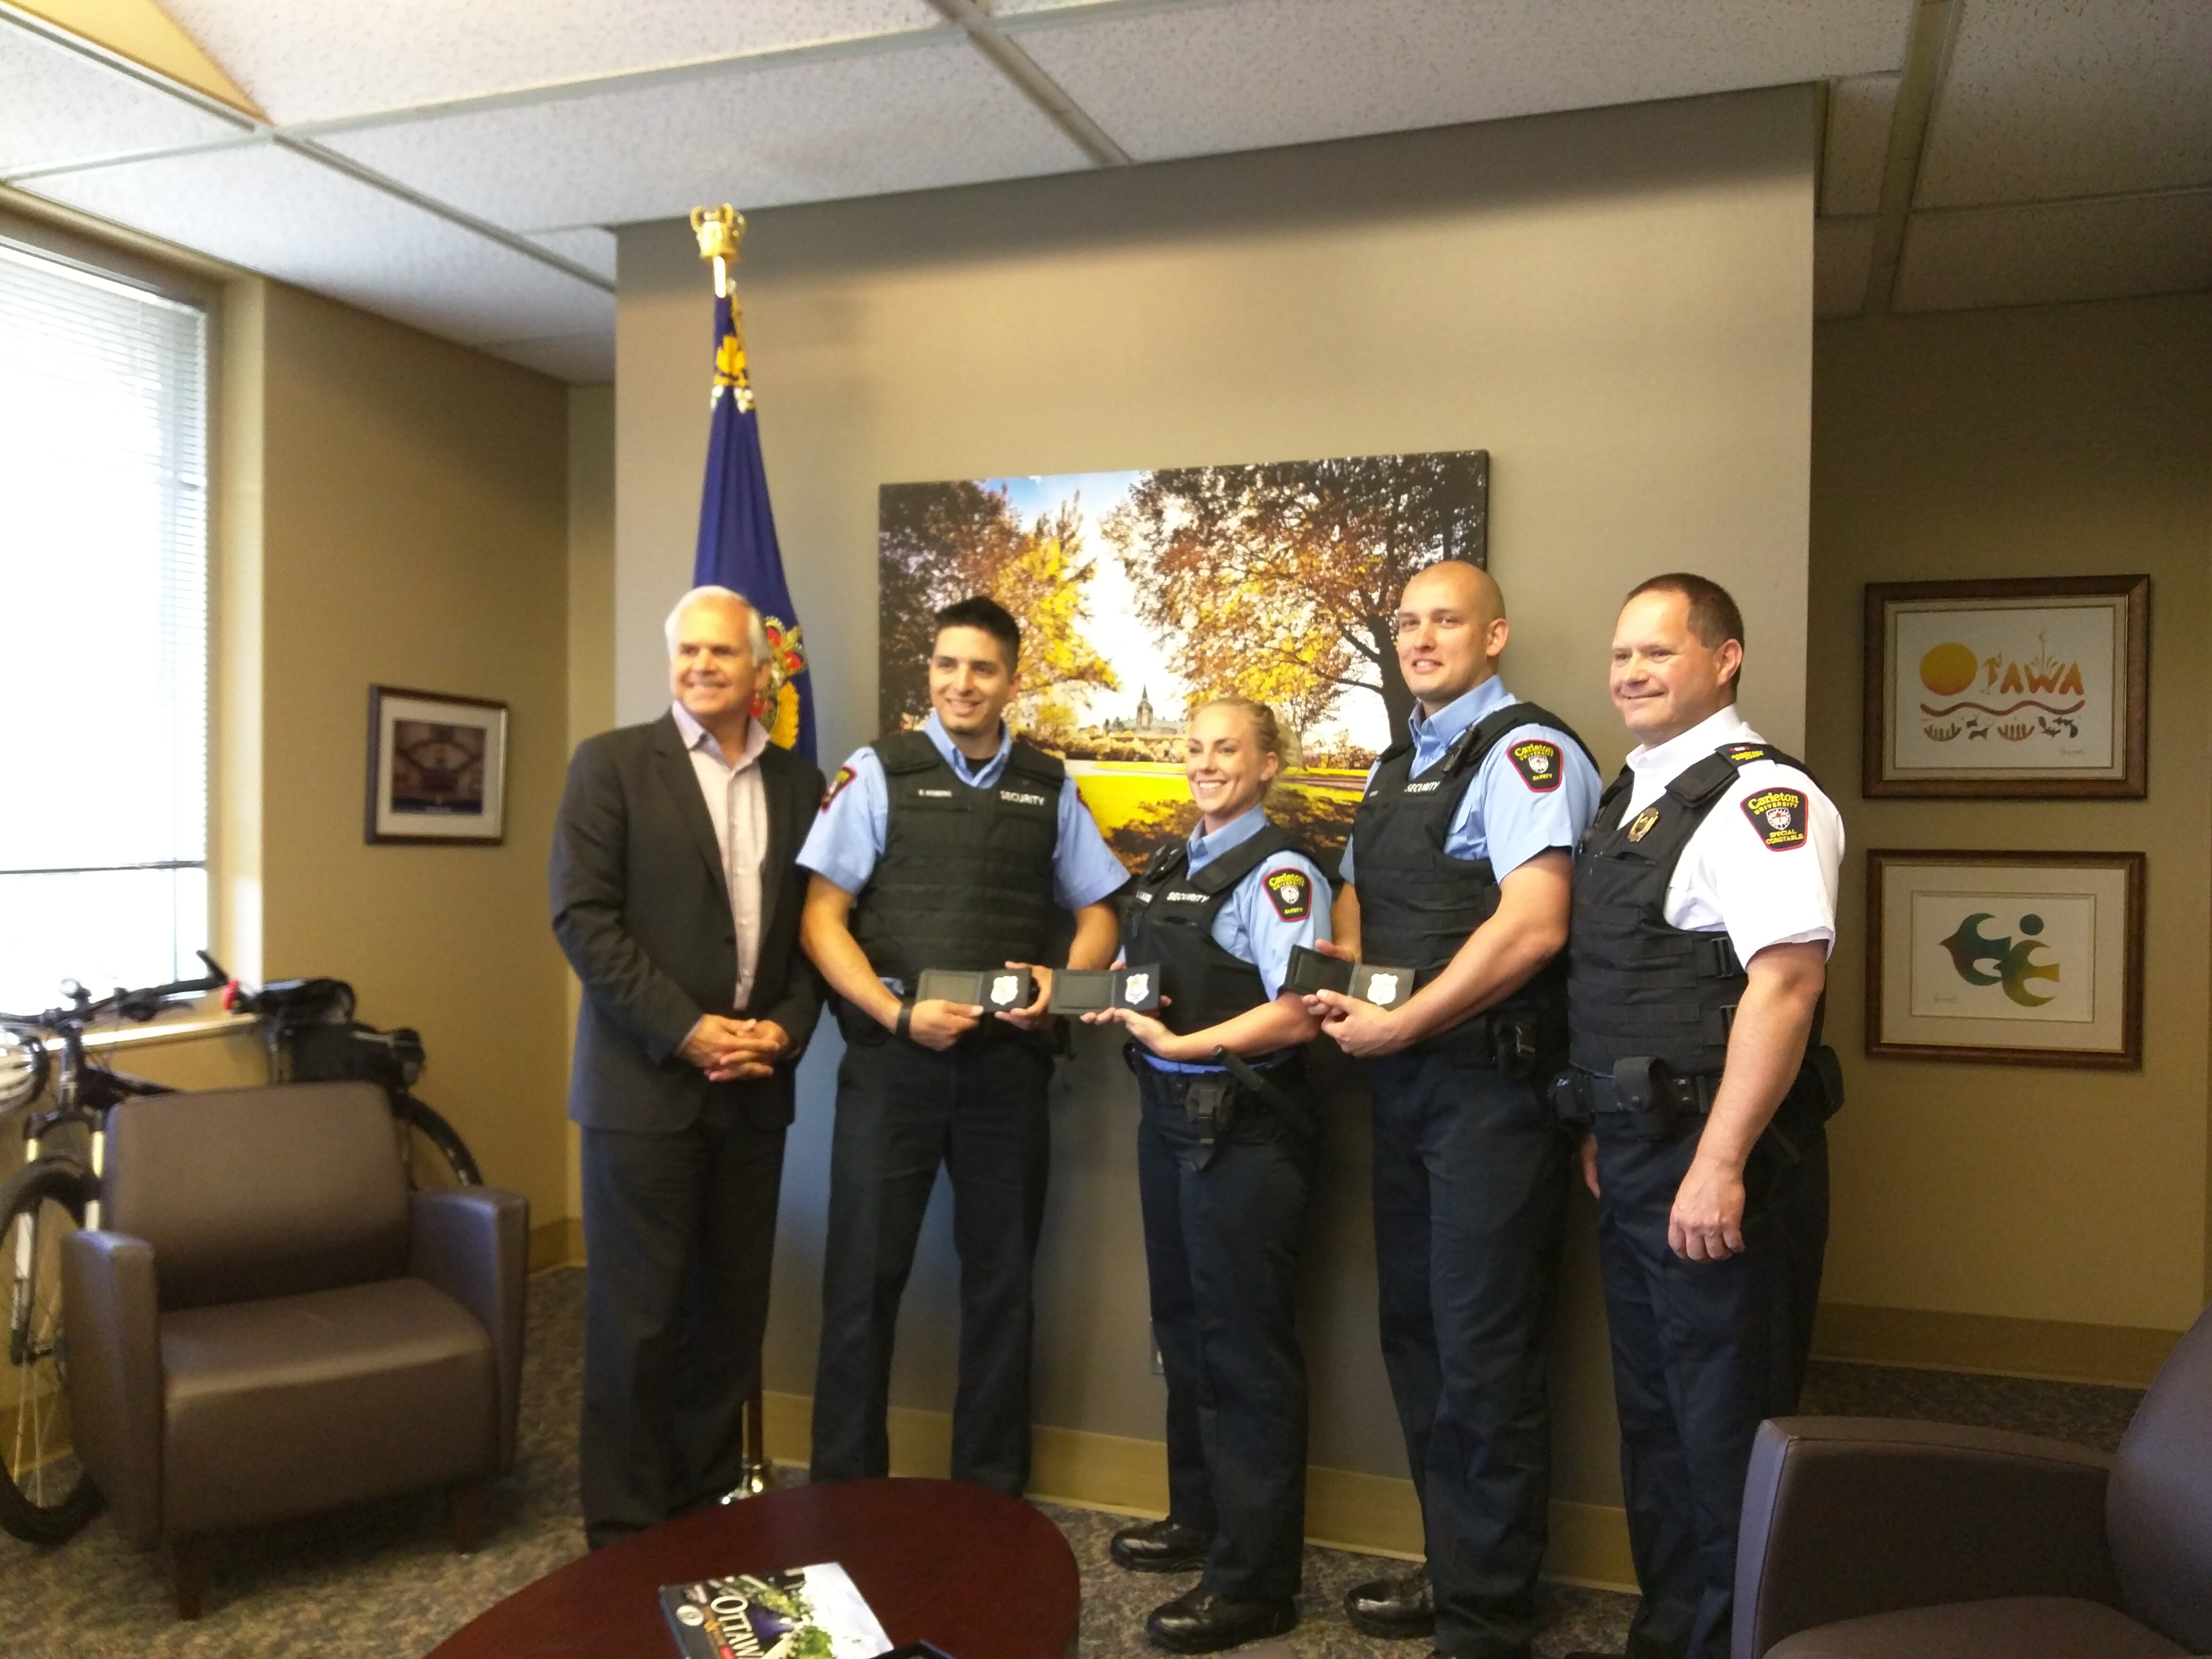 Ottawa Police Chief Charles Bordeleau, S/Cst Benjamin Moberg, S/Cst Laura Lalonde, S/Cst Nicholas Saucier, Acting Assistant Director Christopher Moy